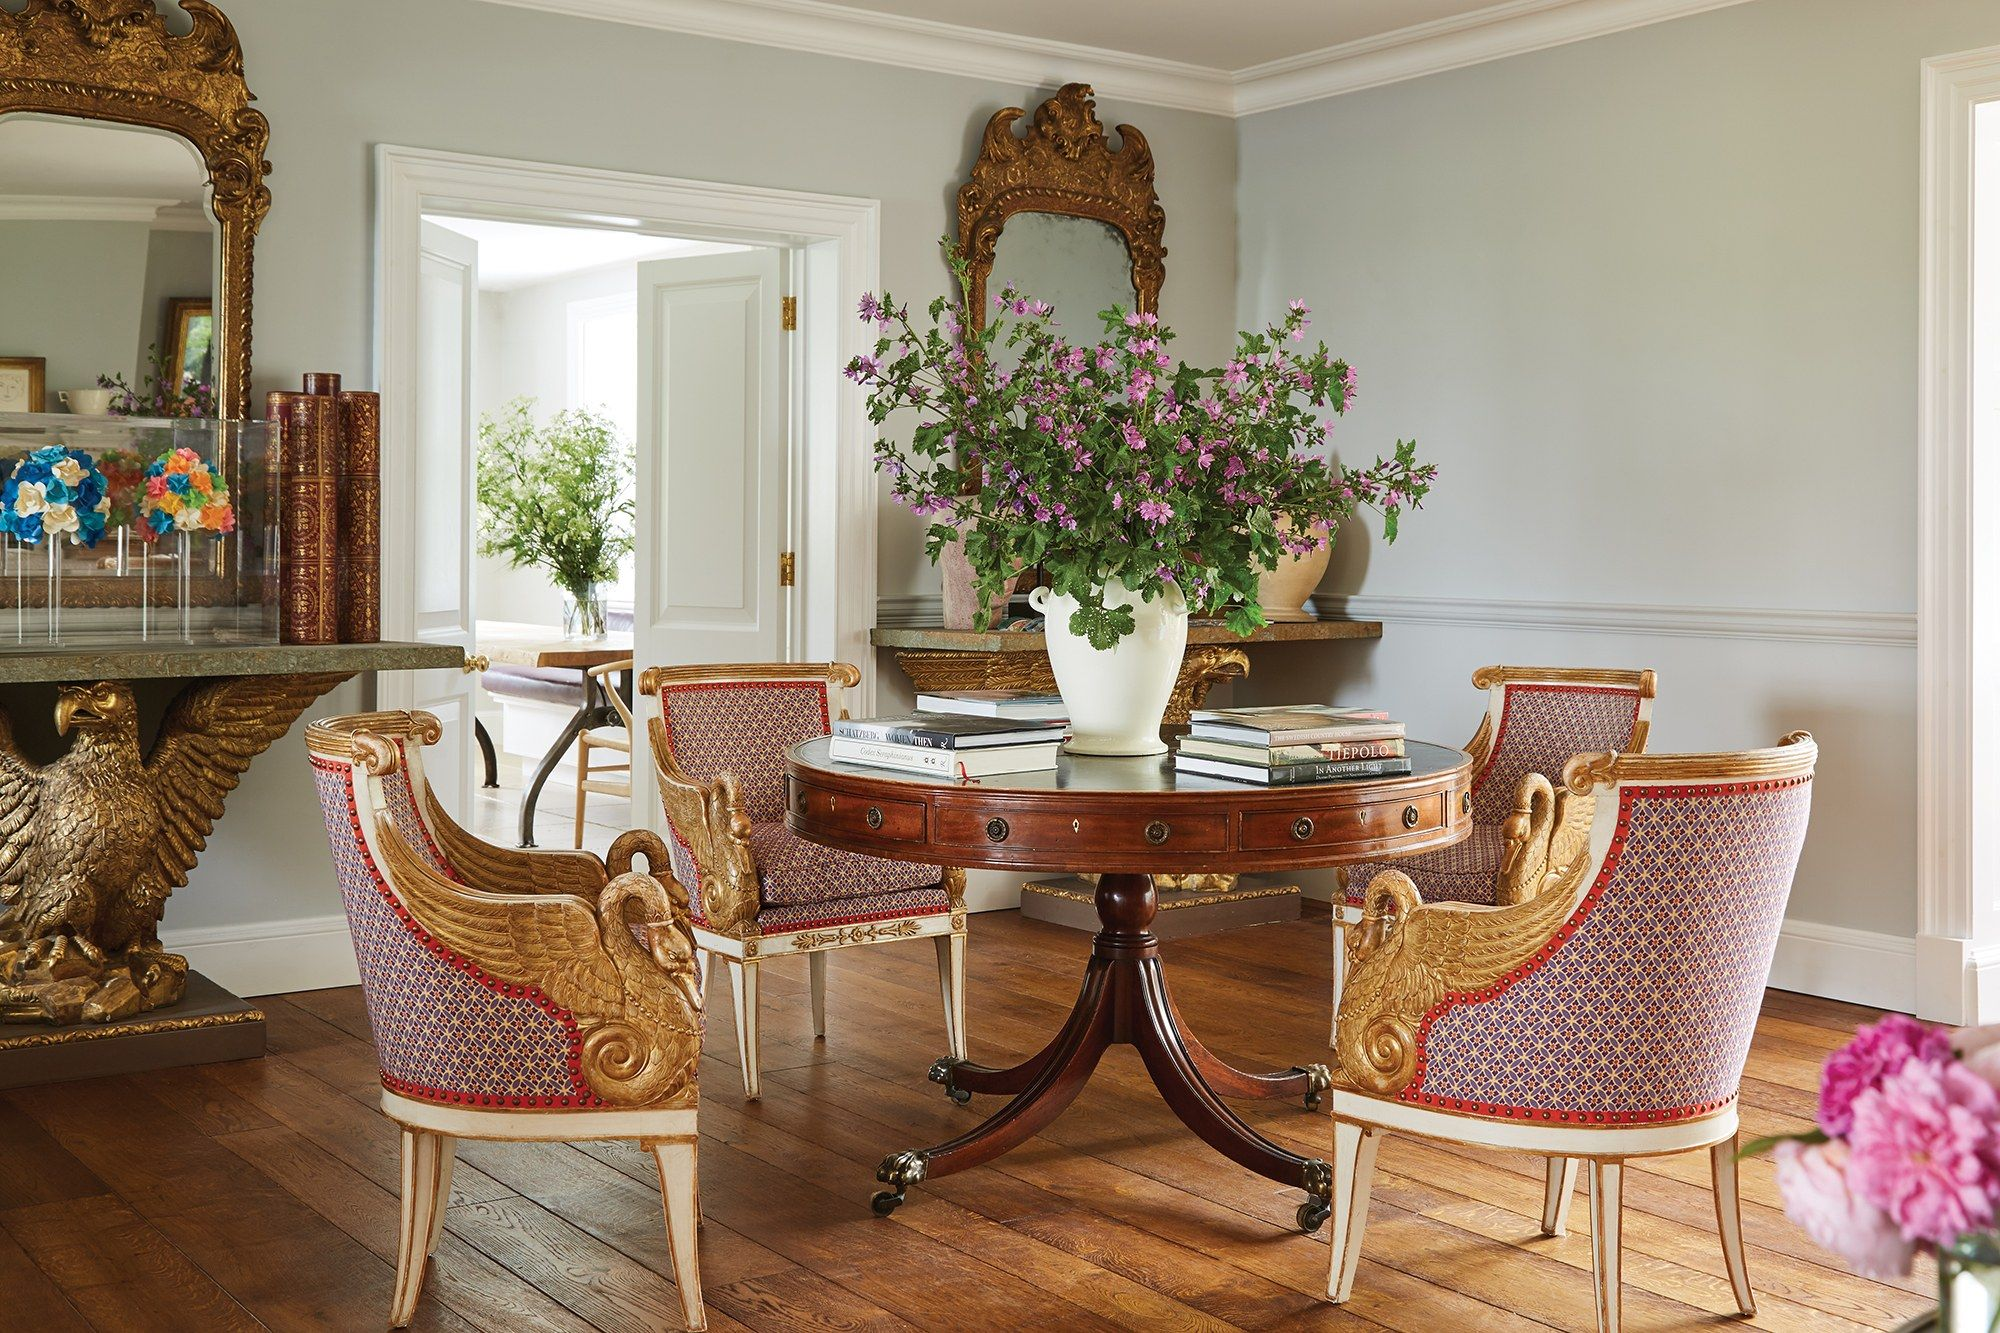 English country home interiors  Inside India Hicksus Dreamy English Country Home  Interior Design